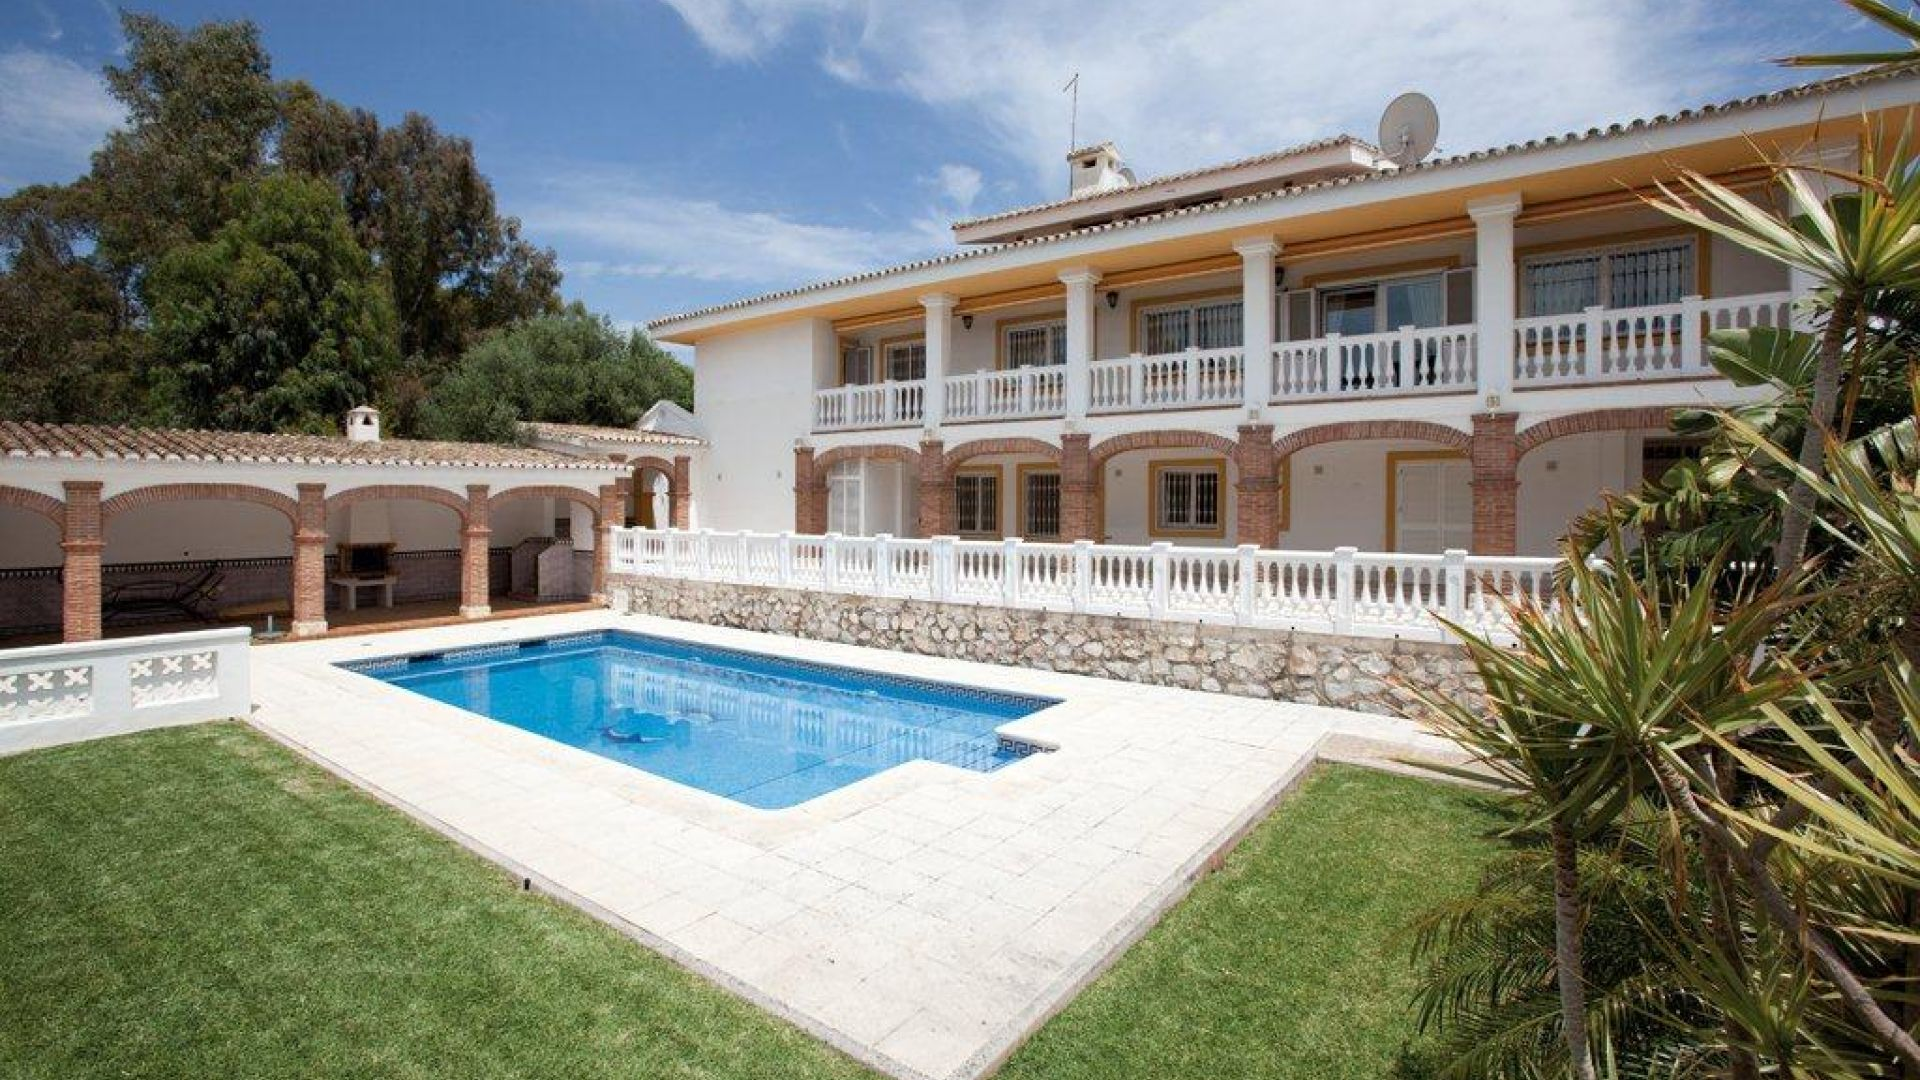 Single Family Home for Sale at Sitio de Calahonda Mijas Costa Mijas, Costa Del Sol 29649 Spain